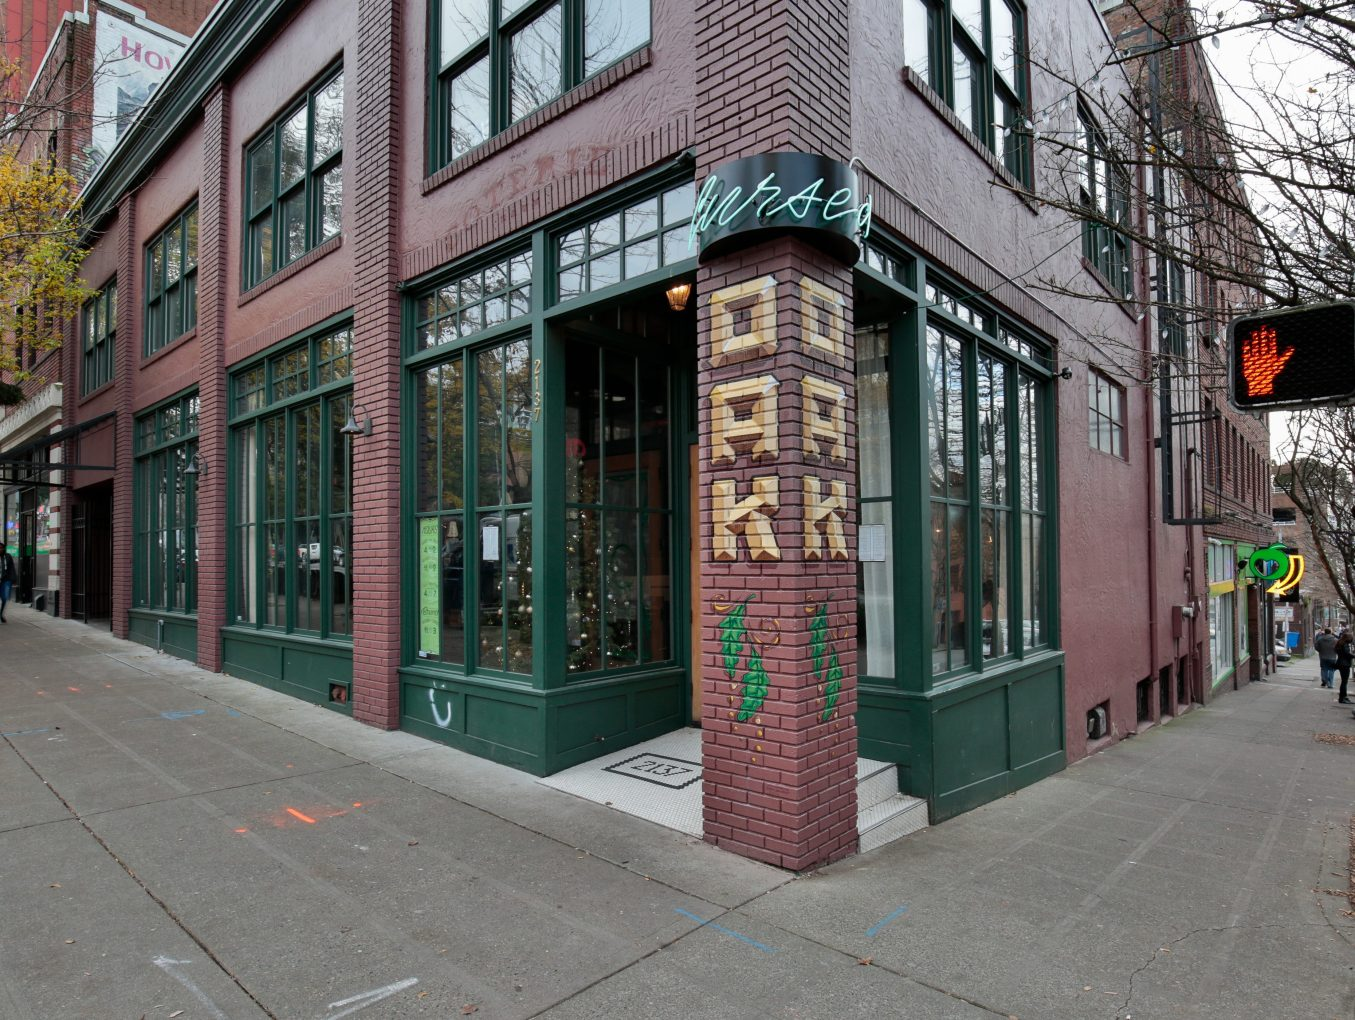 Sale Announcement: 2131 2nd Avenue, Seattle